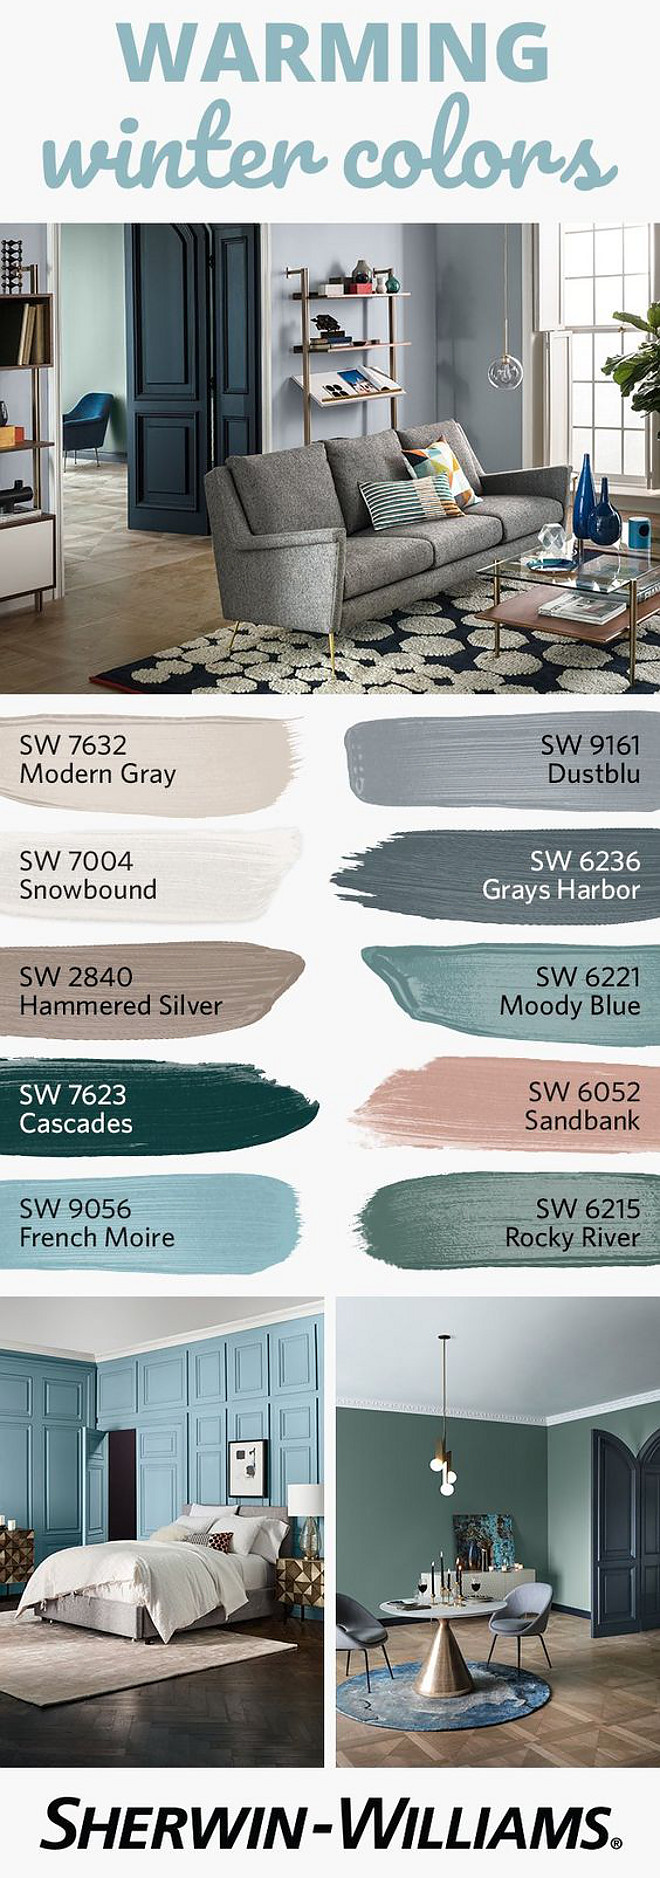 #PaintColors #SherwinWilliams